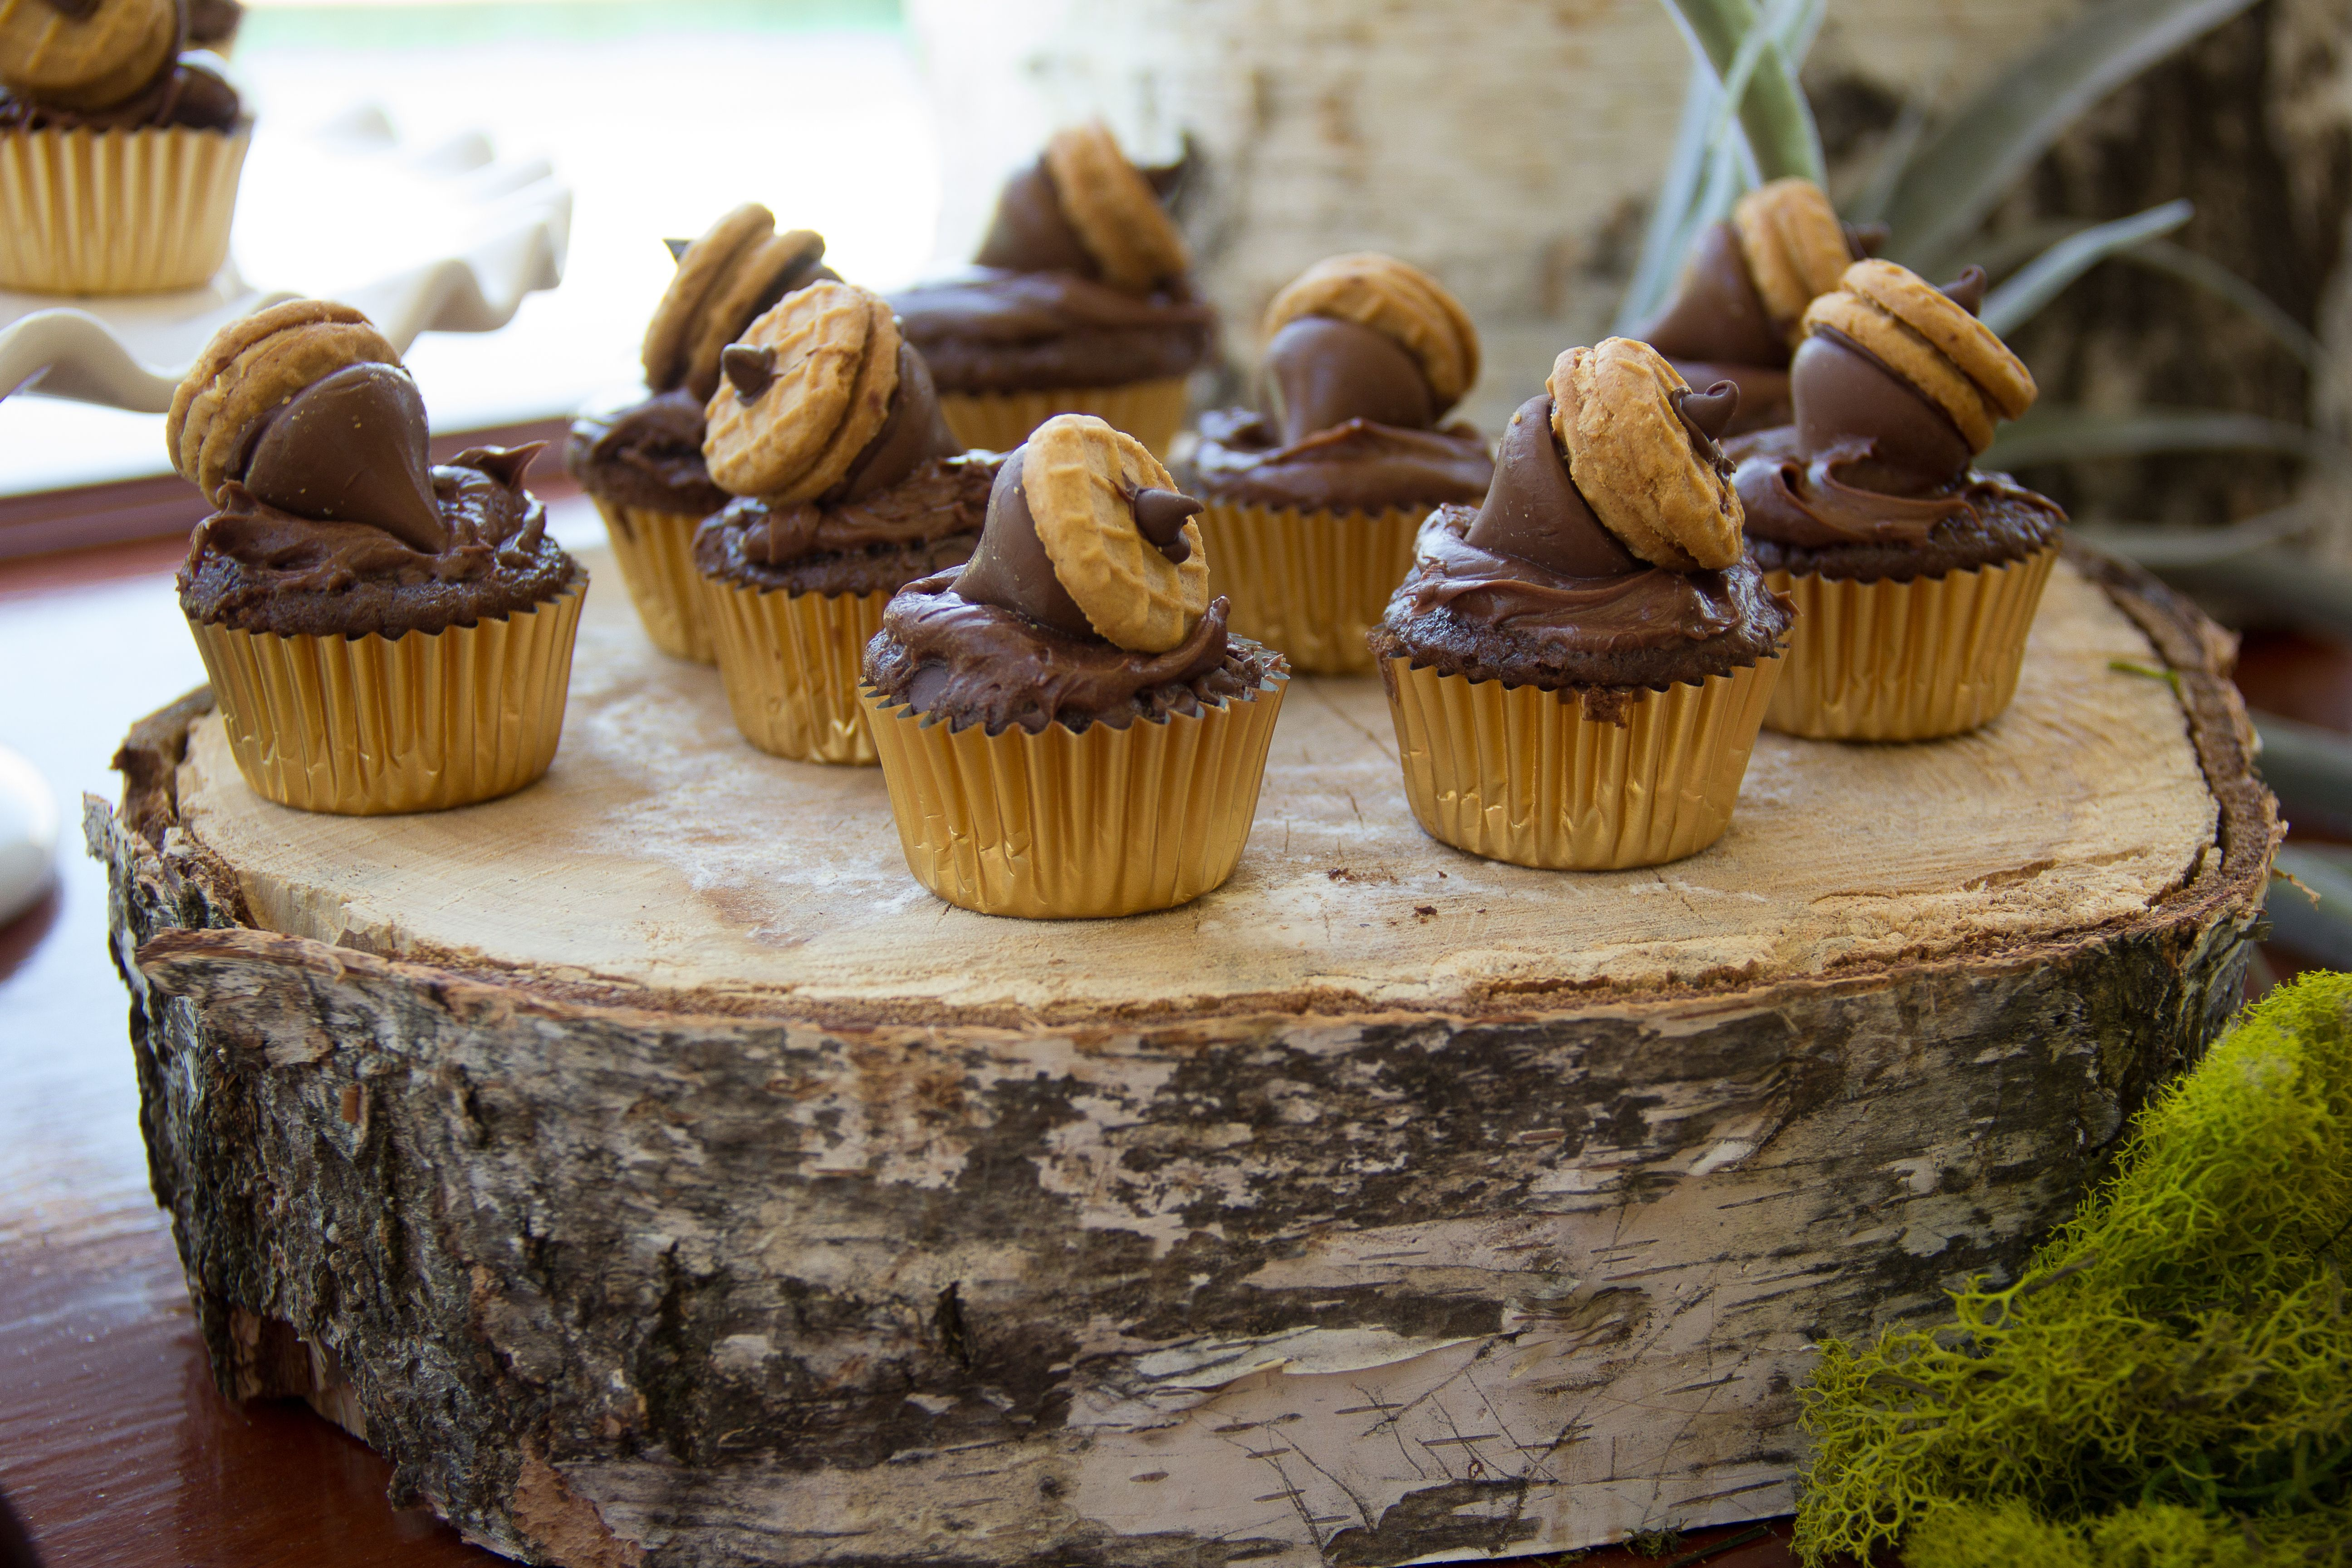 Acorn topped cupcakes at Woodland Baby Shower